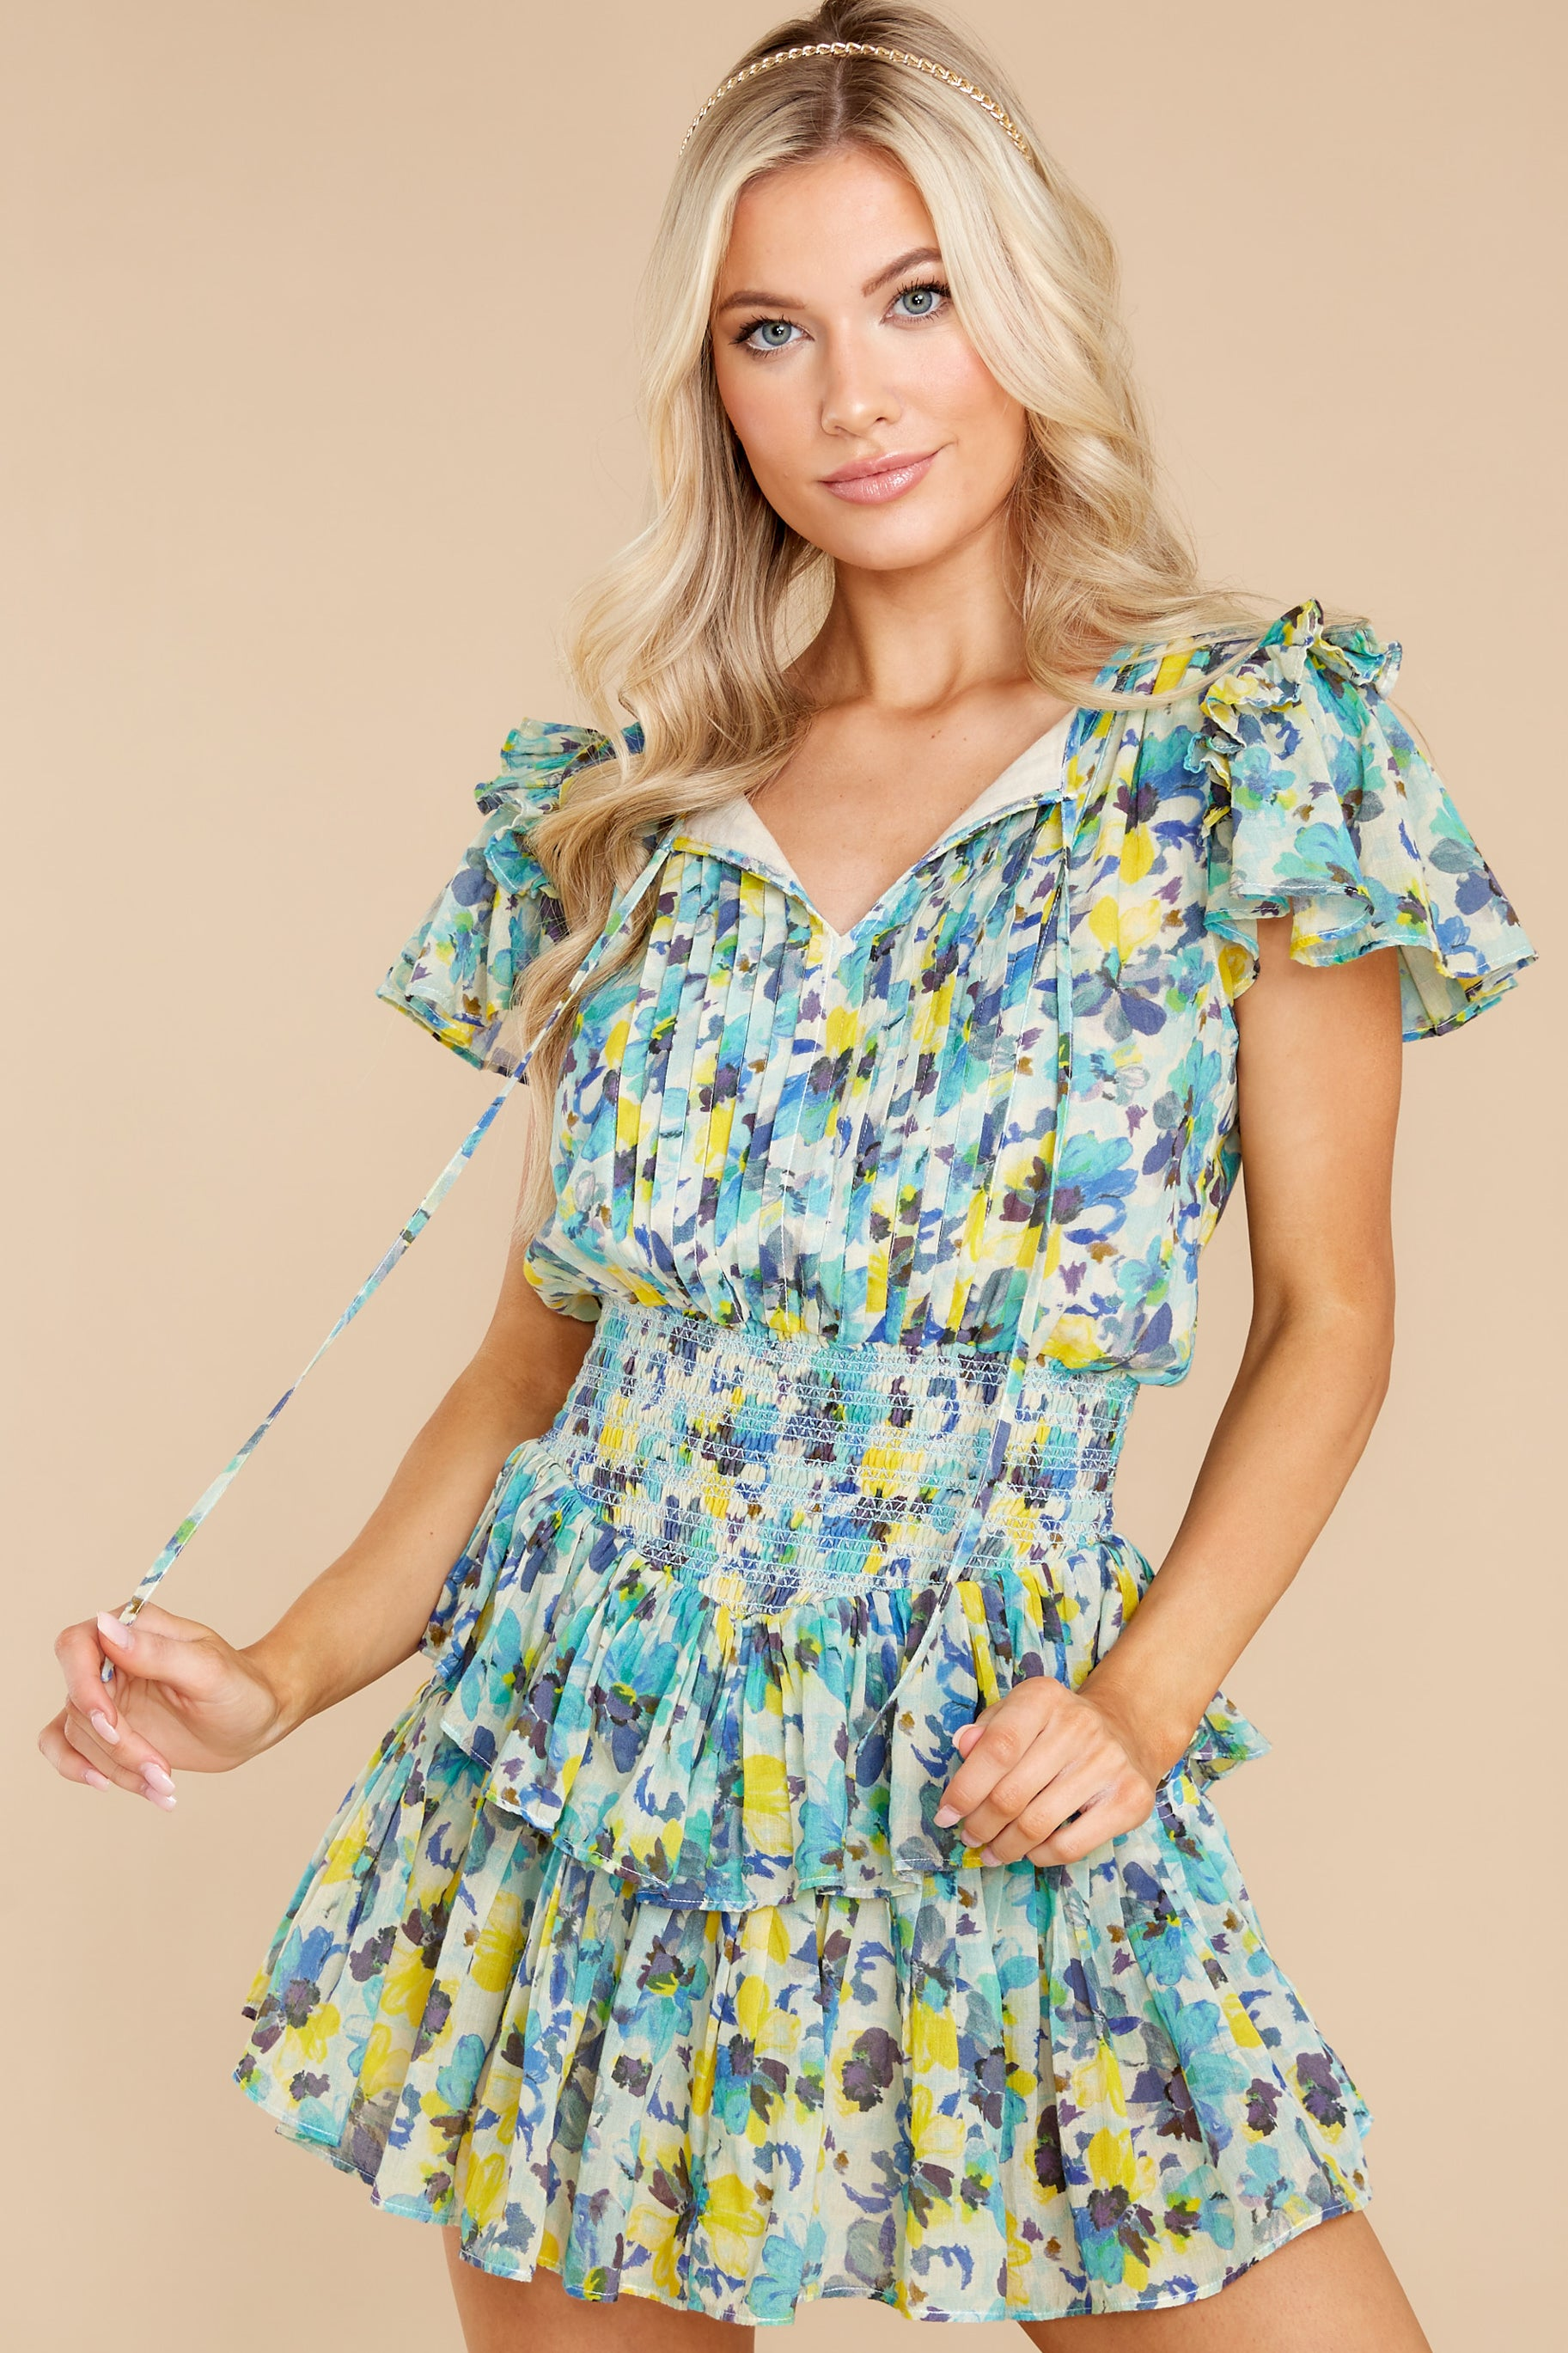 8 Audette Acai Berry Floral Print Dress at reddress.com